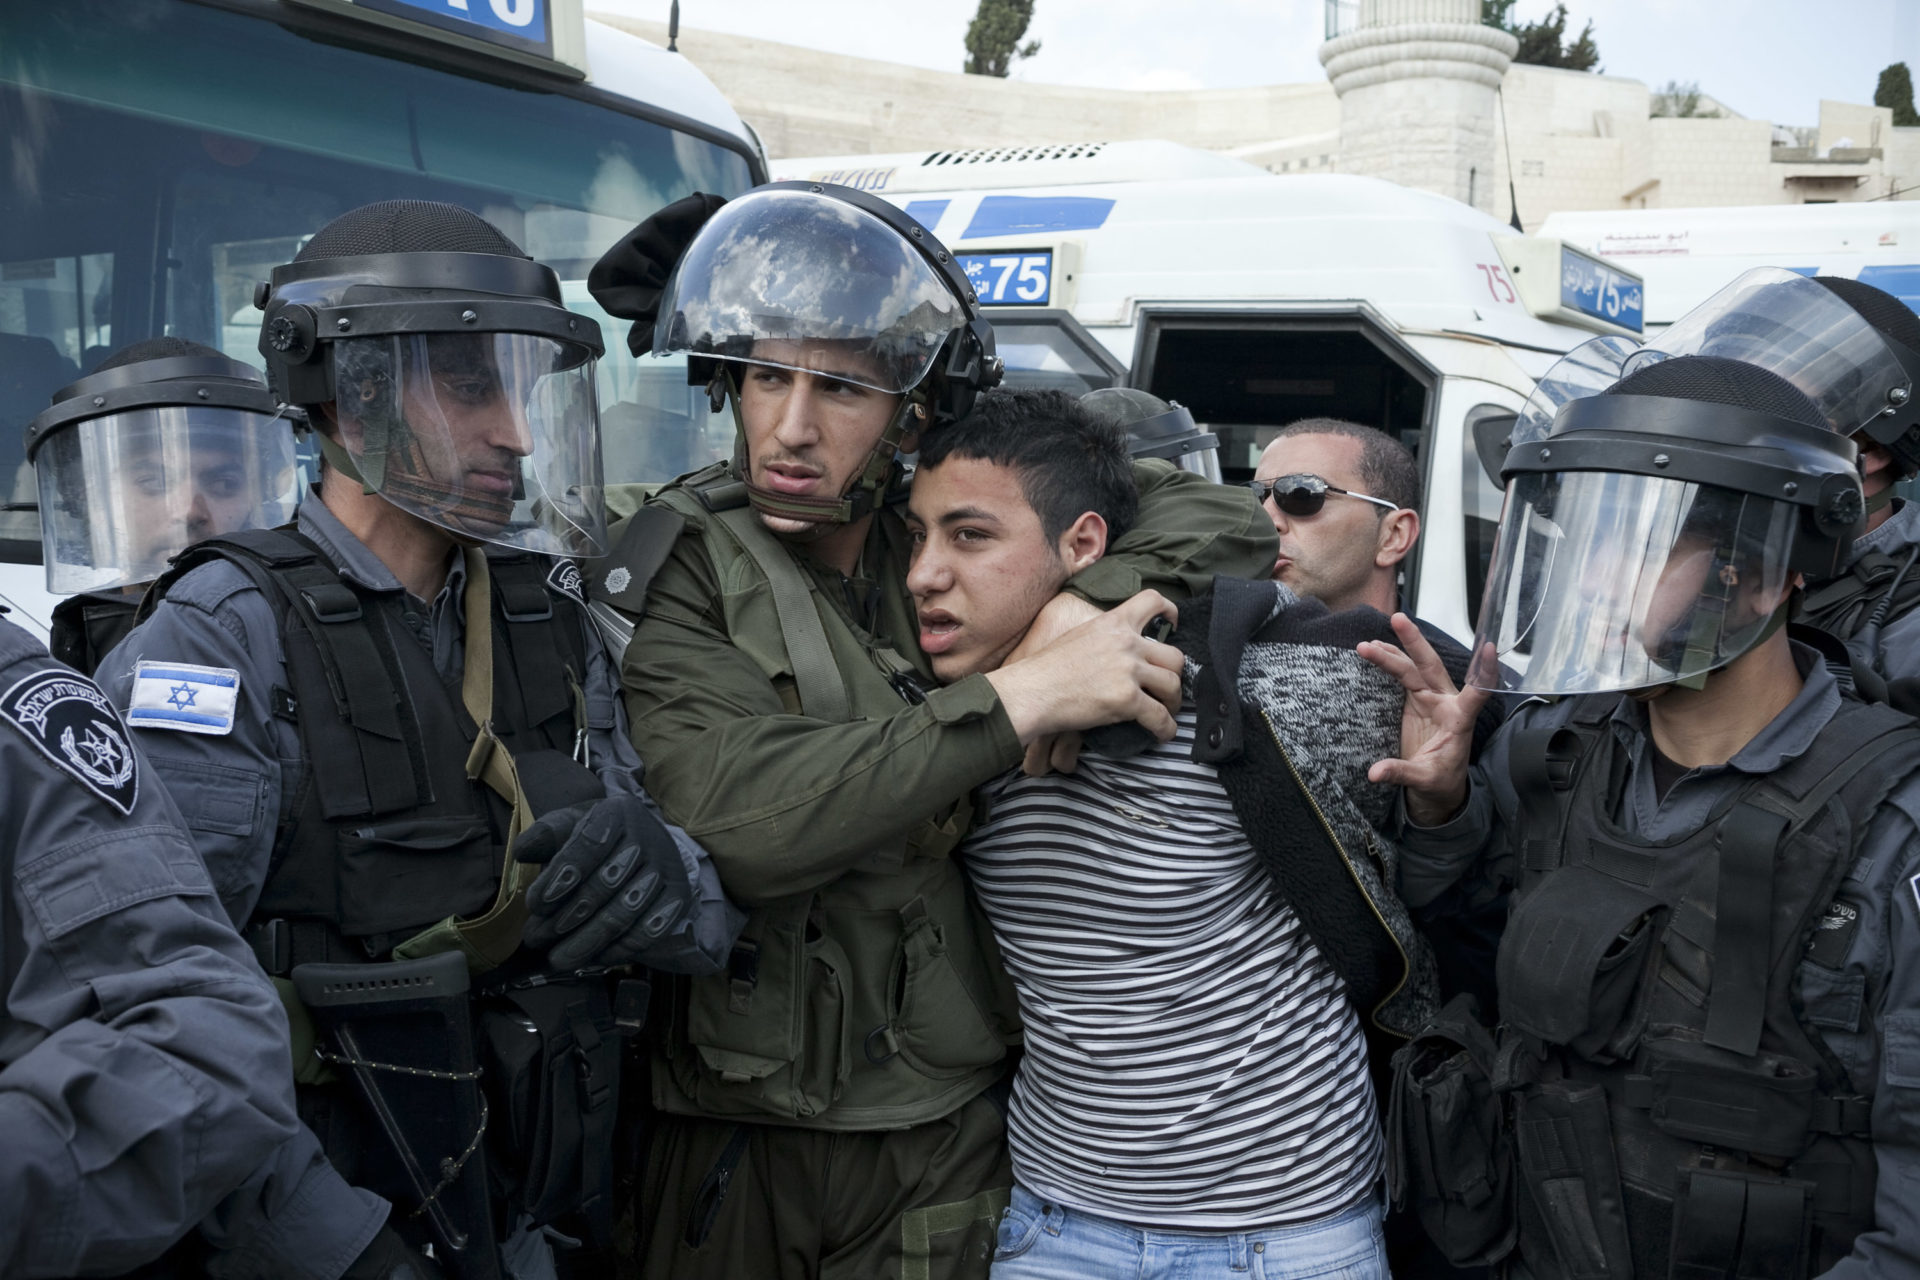 Israeli policemen carry out an arrest after the violent dispersal of a peaceful protest against the occupation. The arrestee signalled to be deaf and mute, and denied categorically to have thrown any stones, or even taken part in any protest.